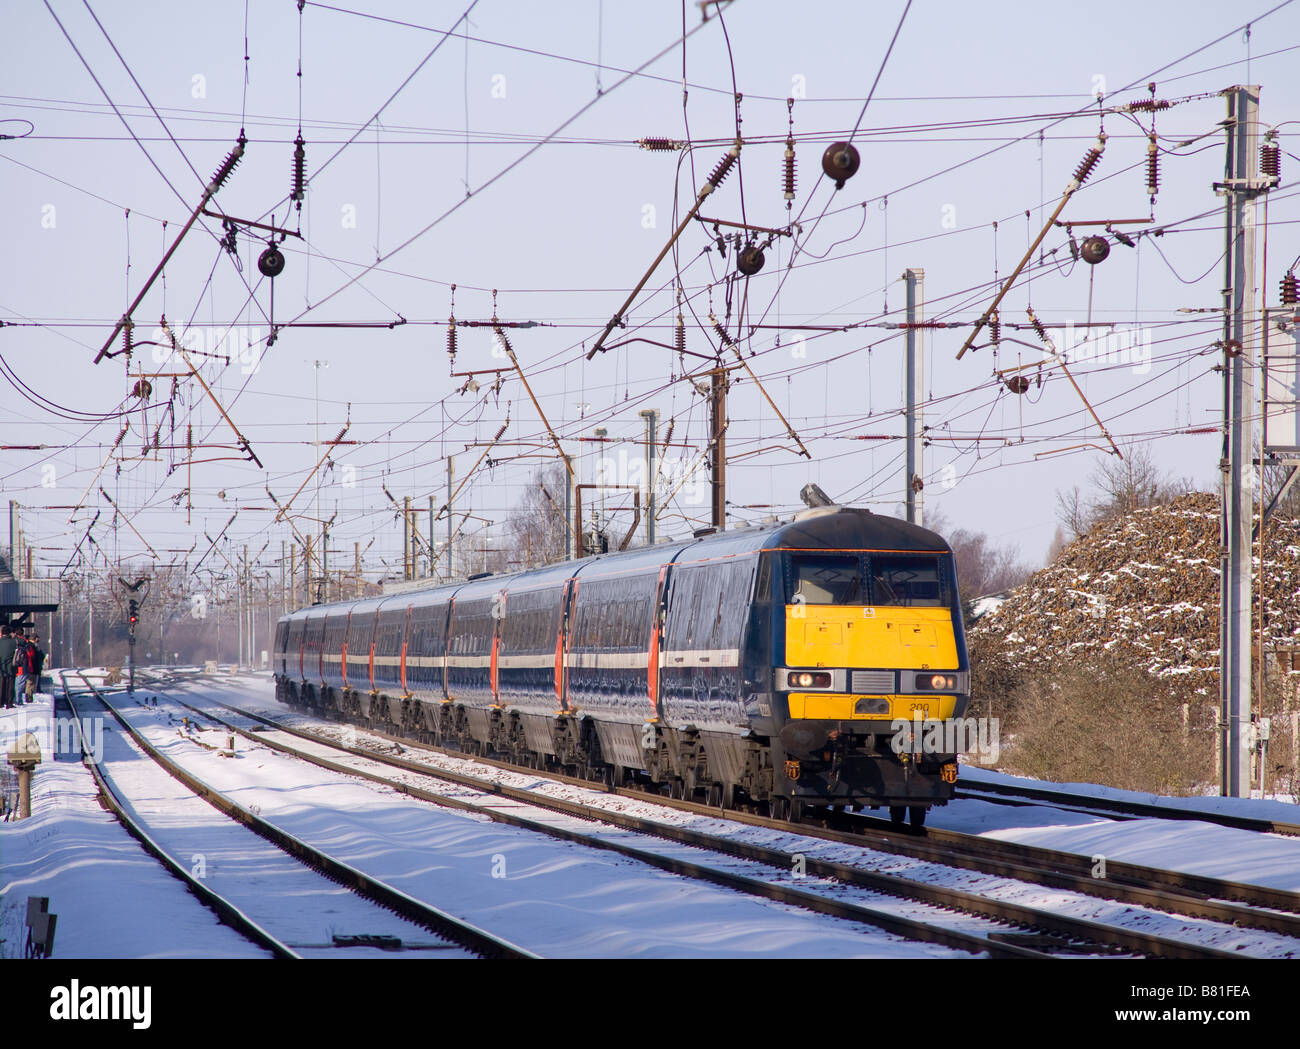 A National Express East Coast electric train passing through a snowy Hitchin. - Stock Image